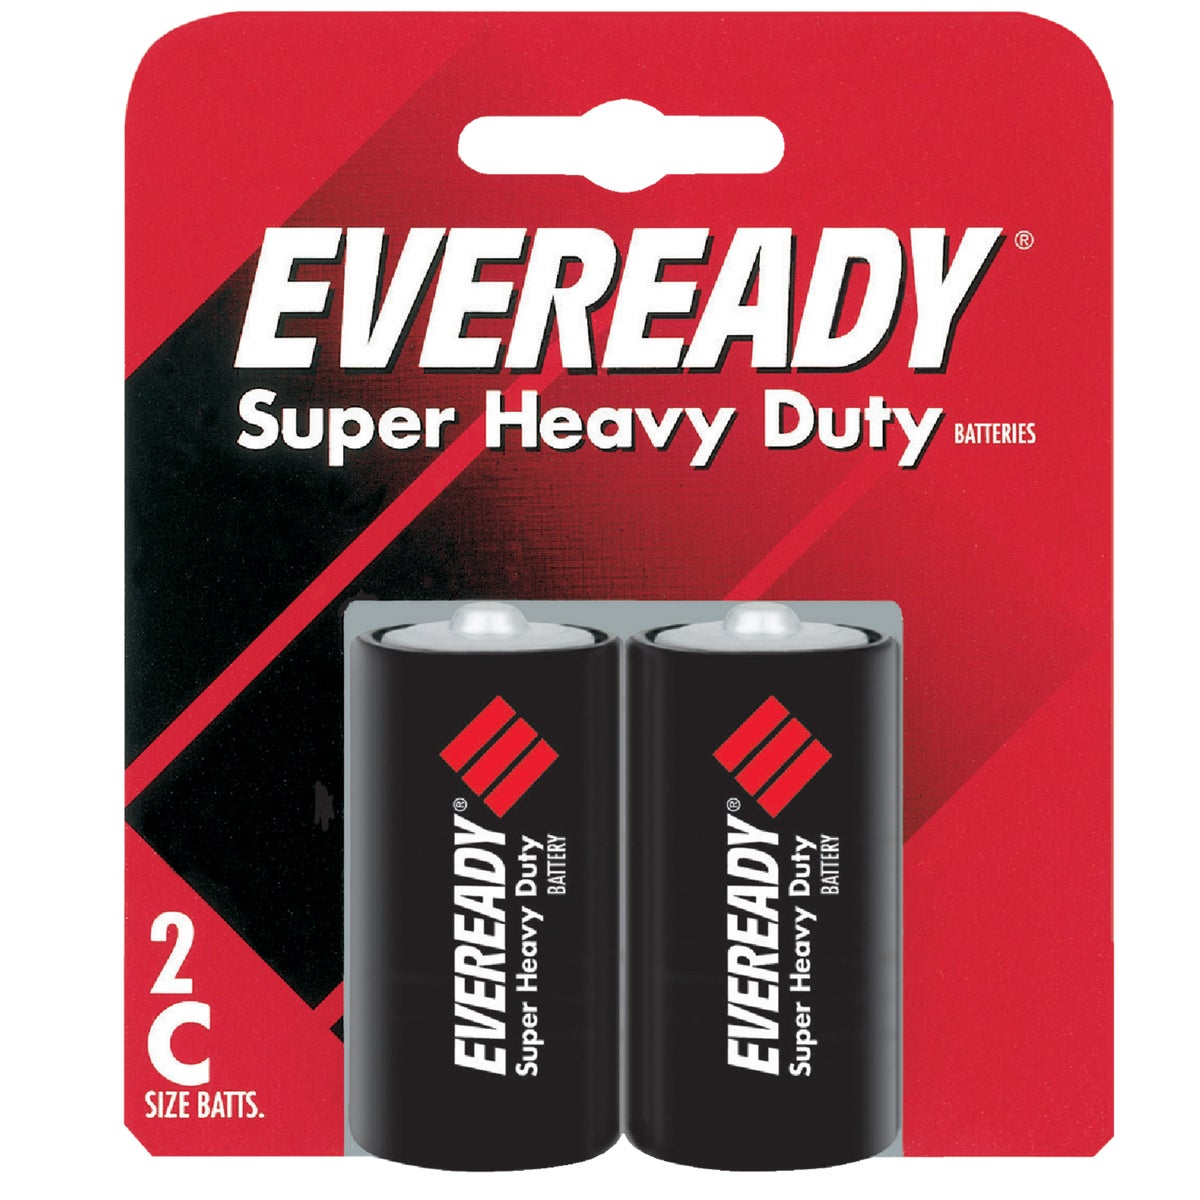 2CD C H/DUTY BATTERY - 1235SW-2 by Energizer